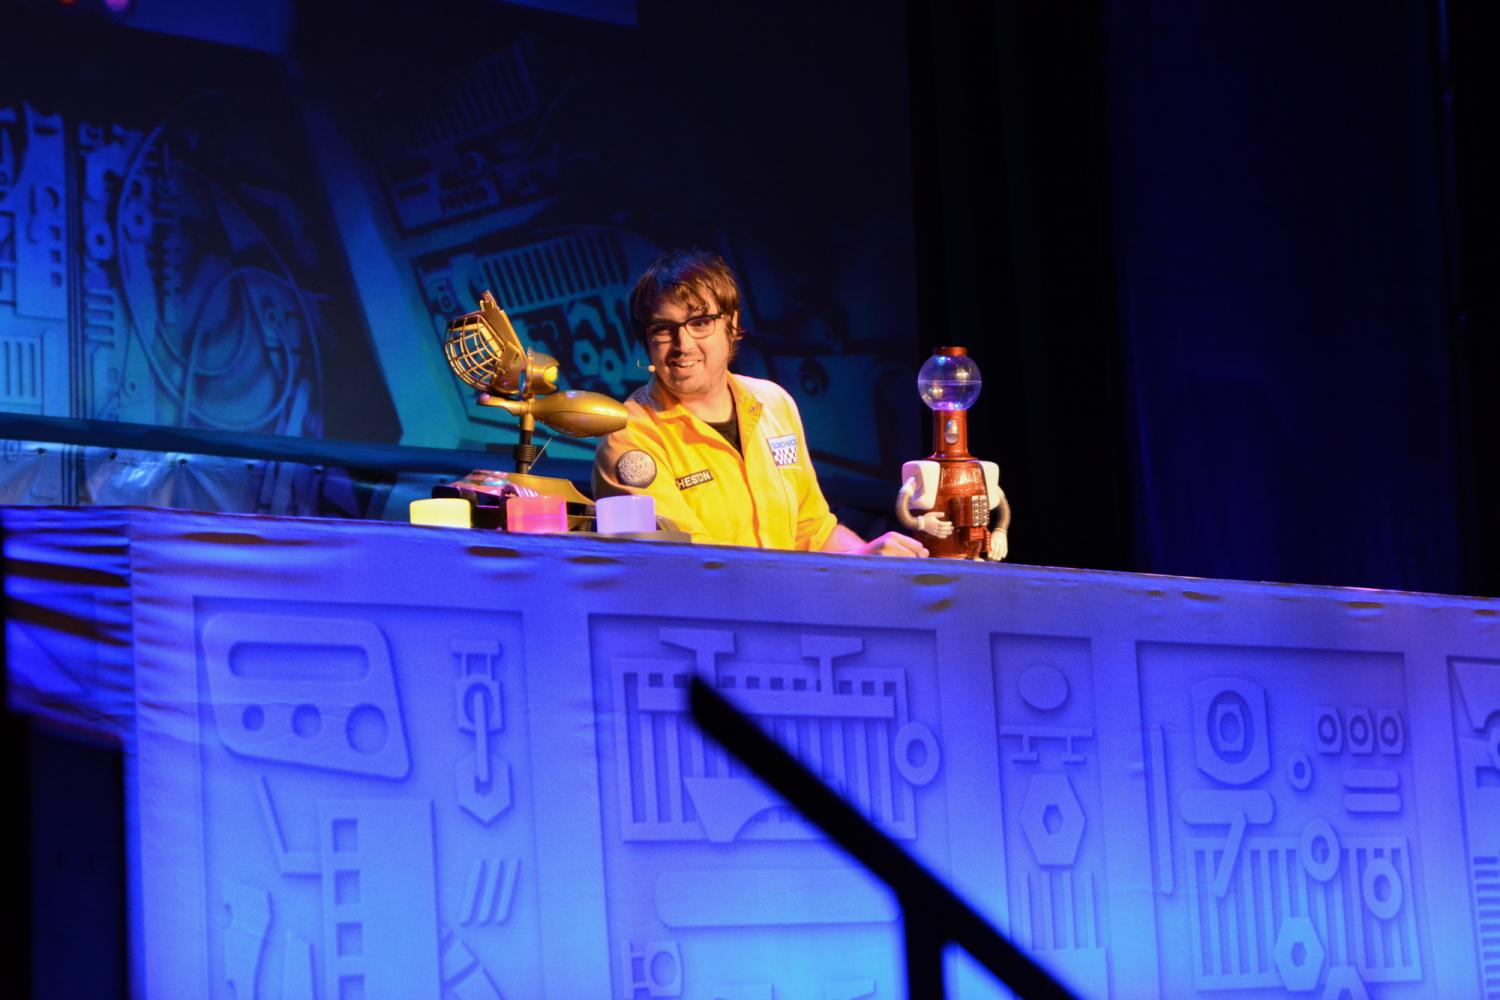 Jonah Ray with his robot friends Tom Servo and Crow T. Robot. Photo via: Brianna Griepentrog/PTG Live Events